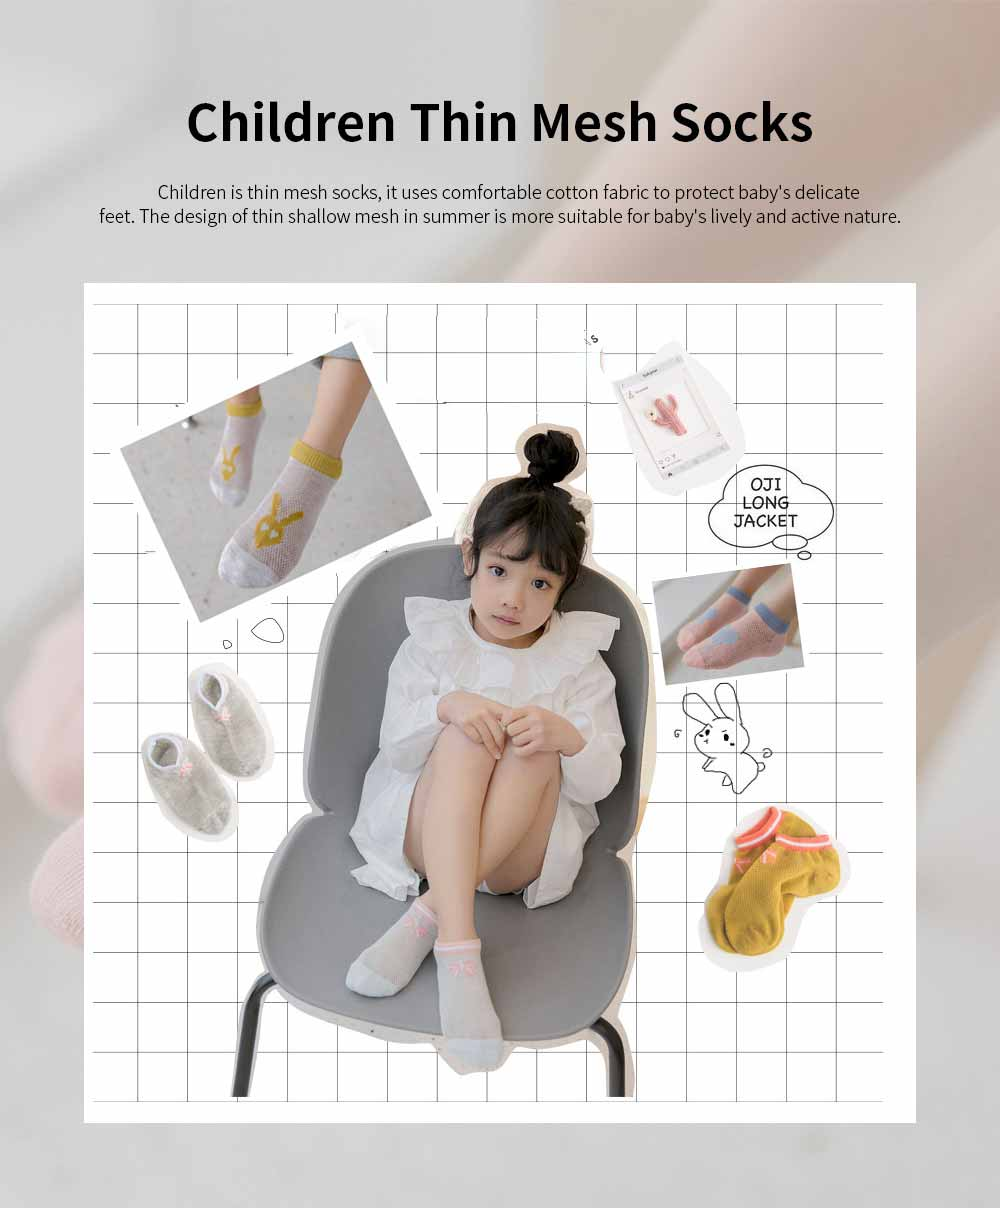 Children 's Thin Mesh Socks All-cotton Breathable Shallow mouth Cute Children's Socks For Summer 0